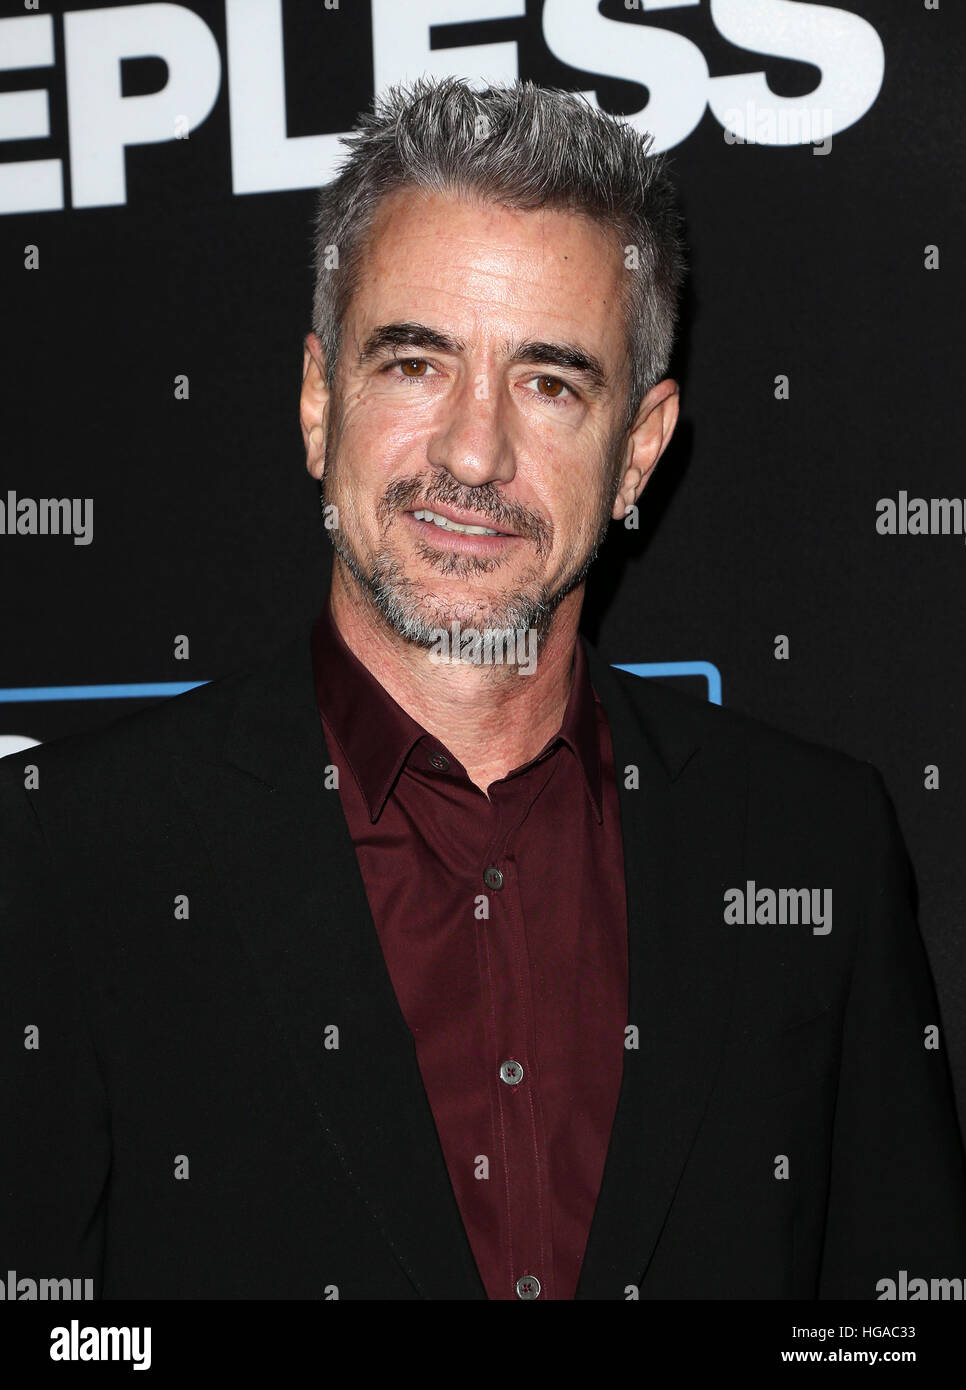 Los Angeles, CA - gennaio 05: Dermot Mulroney, a Premiere di strada aperta film' 'Sleepless', al Regal Immagini Stock